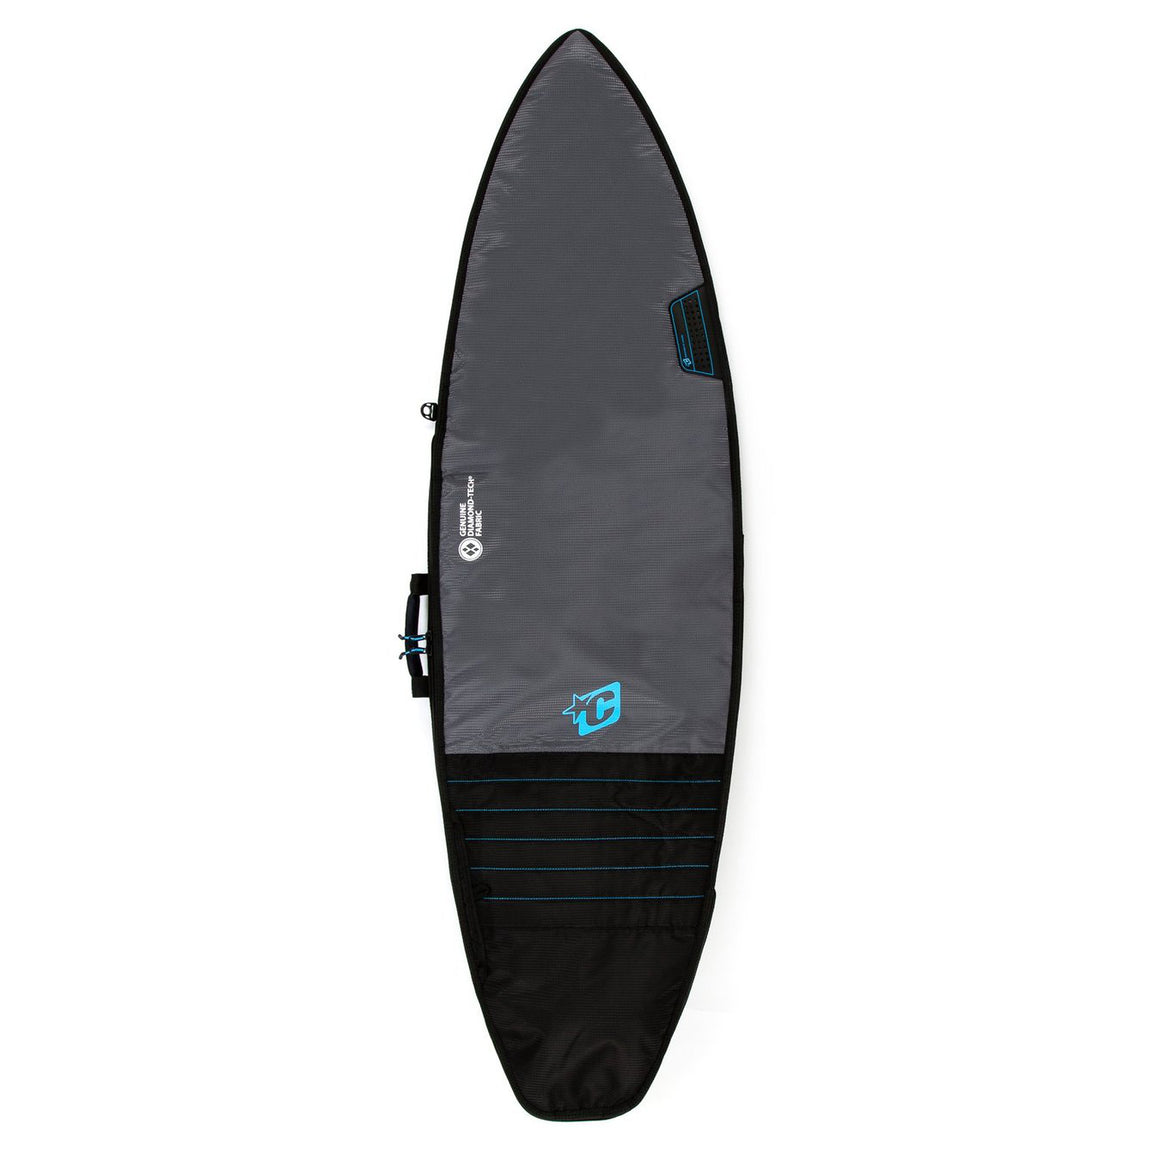 Creature of Leisure board bag - Shortboard Day Use: Charcoal Cyan